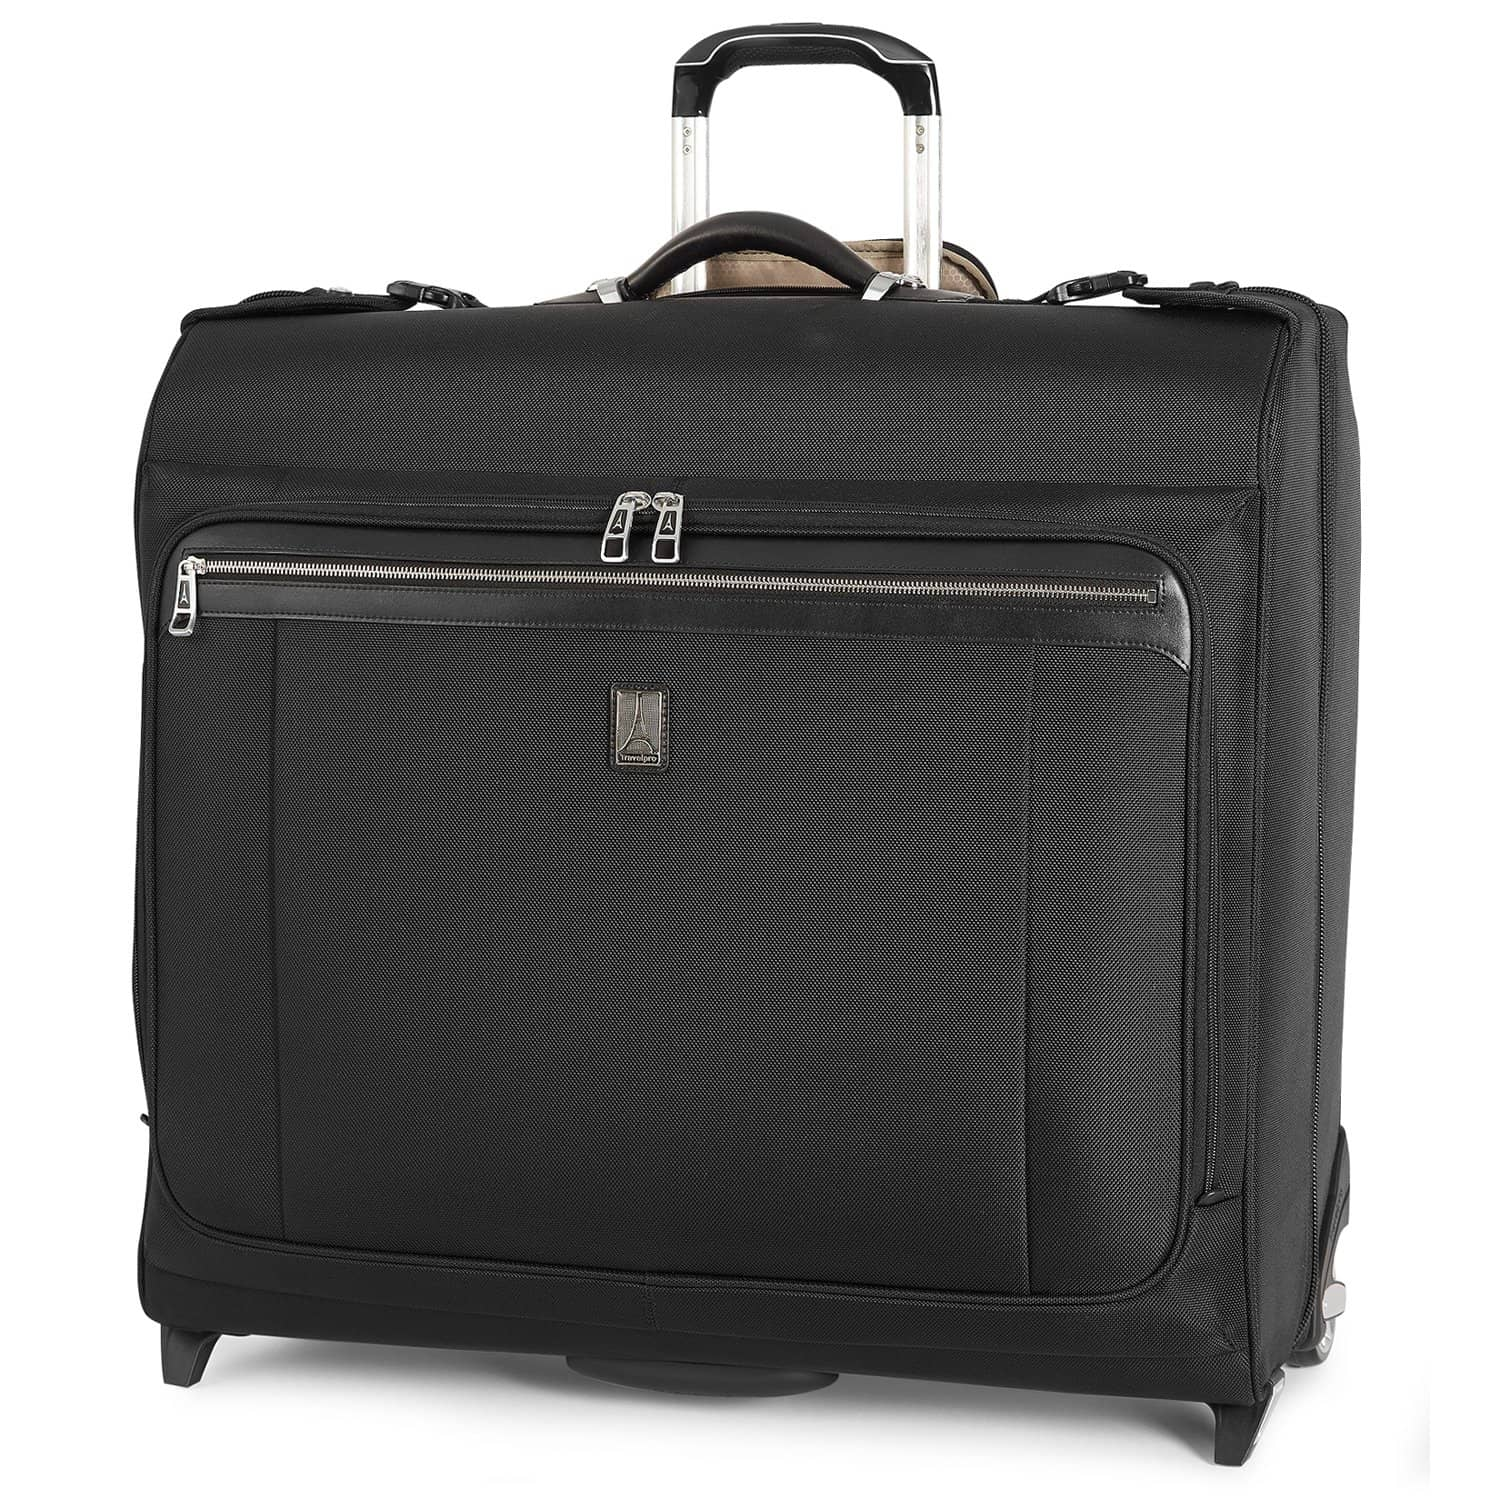 One Size Siena Travelpro Luggage Platinum Magna 50 Inch Expandable Rolling Garment Bag